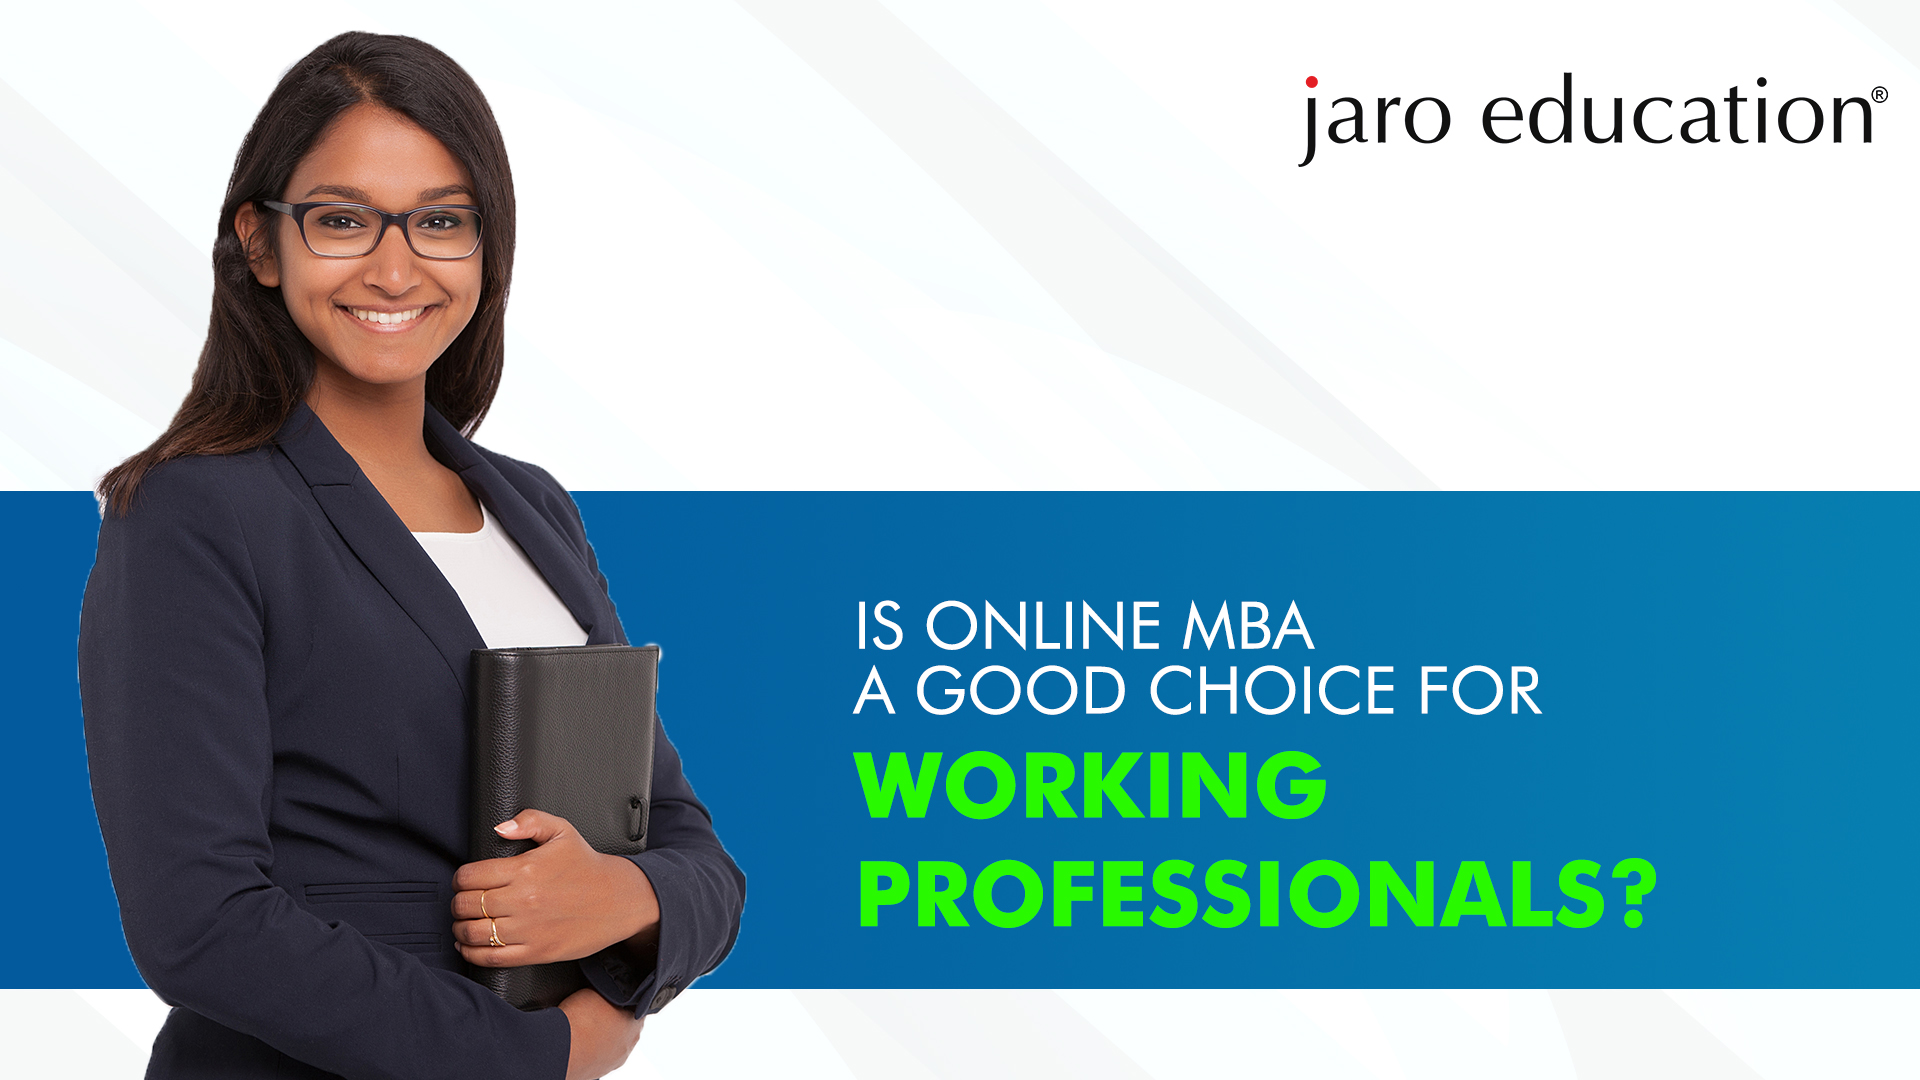 How does an online MBA course help juggle work and career?